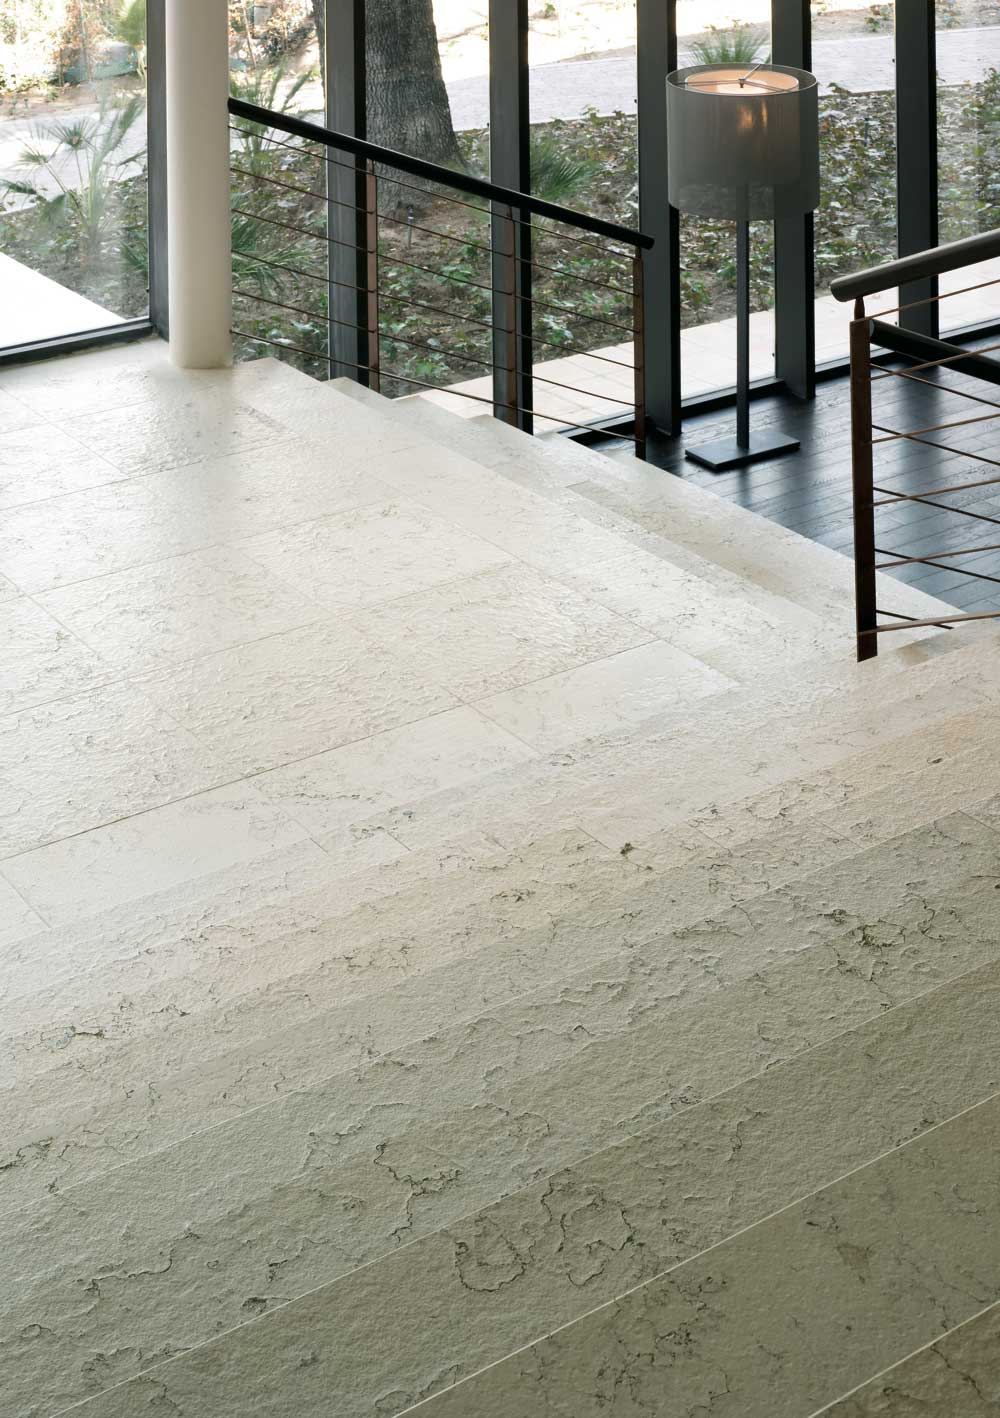 NH Sotogrande - Escalera de piedra natural - Natural Stone staircase - Perlino Bianco